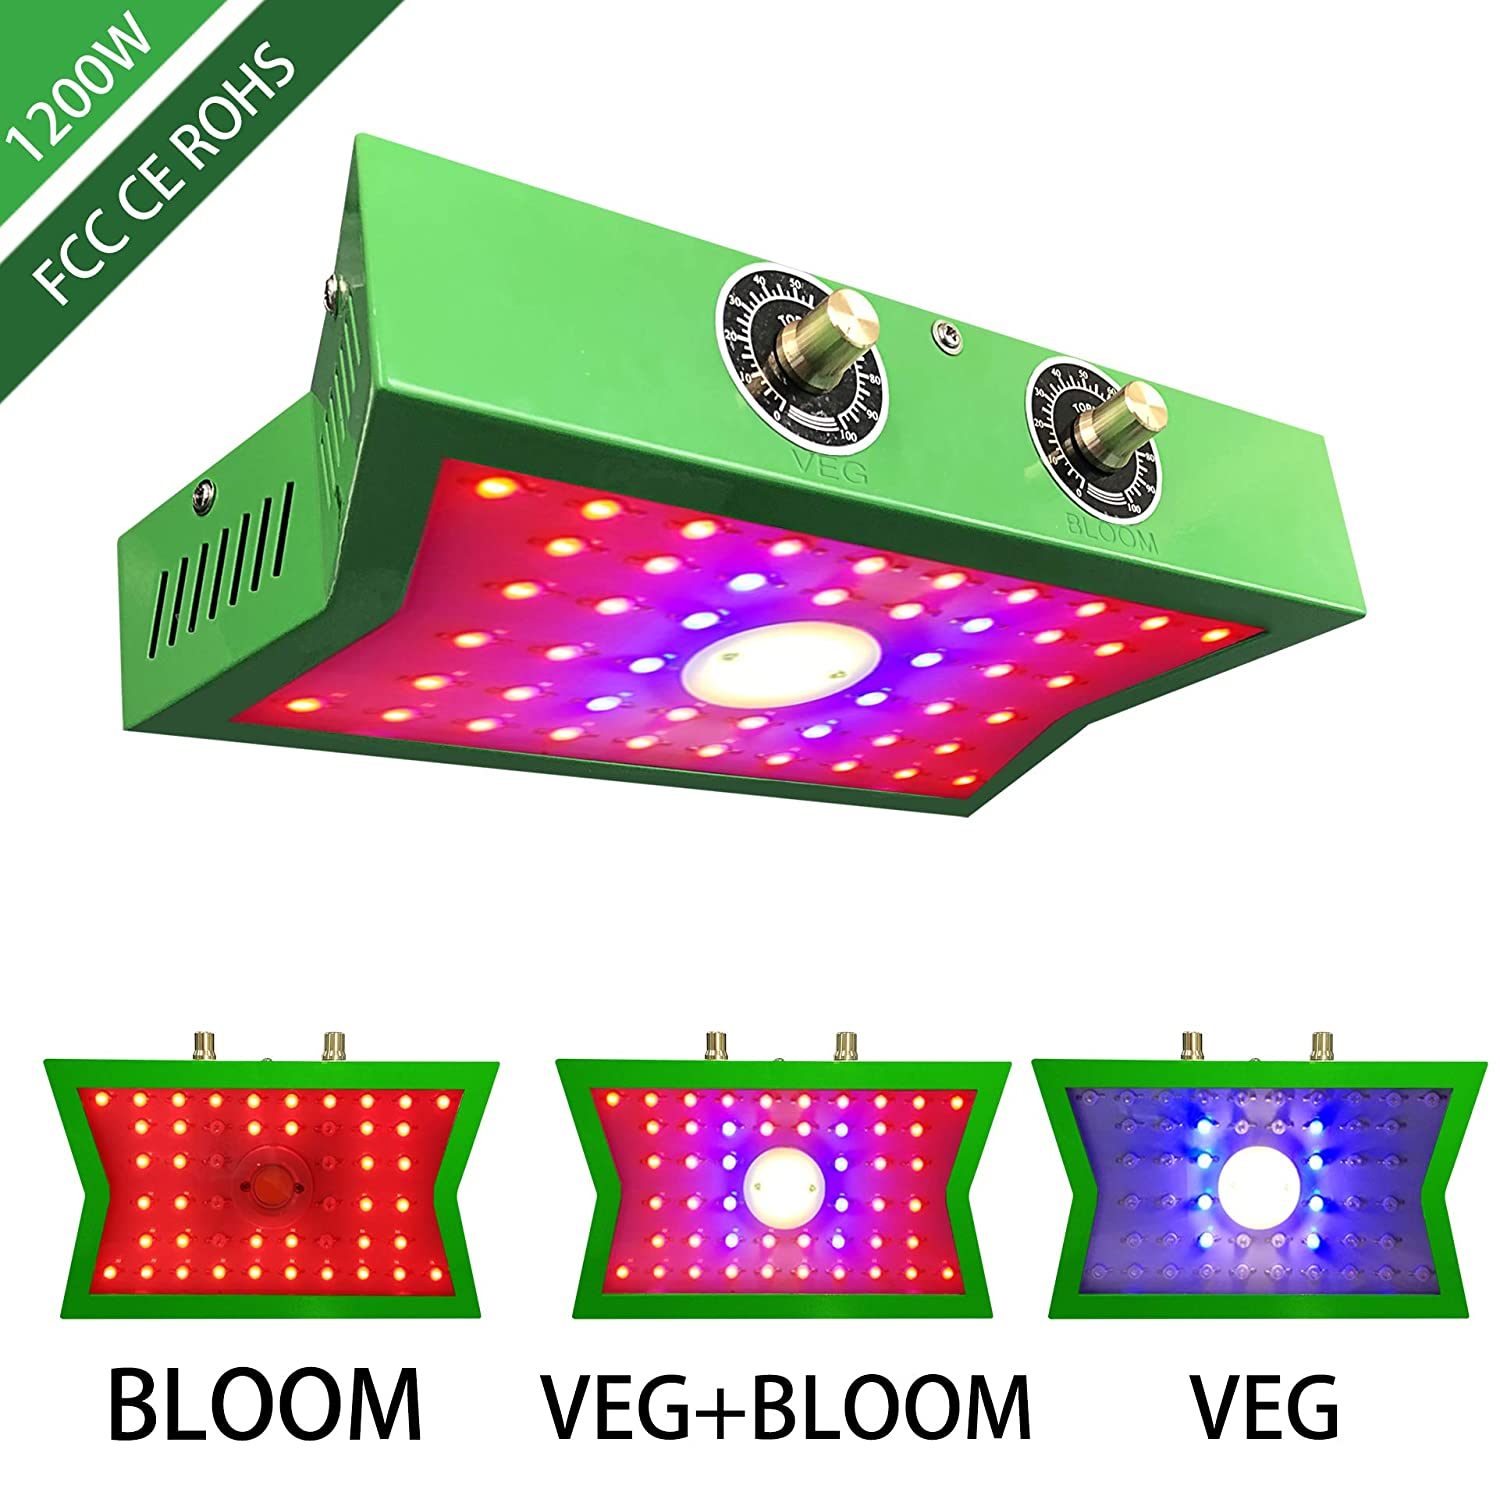 COB LED Grow Light 1200W, Adjustable Veg Bloom Switch Full Spectrum Growing Lamps Double Chips for Indoor Plants Hydroponics Greenhouse Fruits Veg and Flowers Growing Light Fixtures